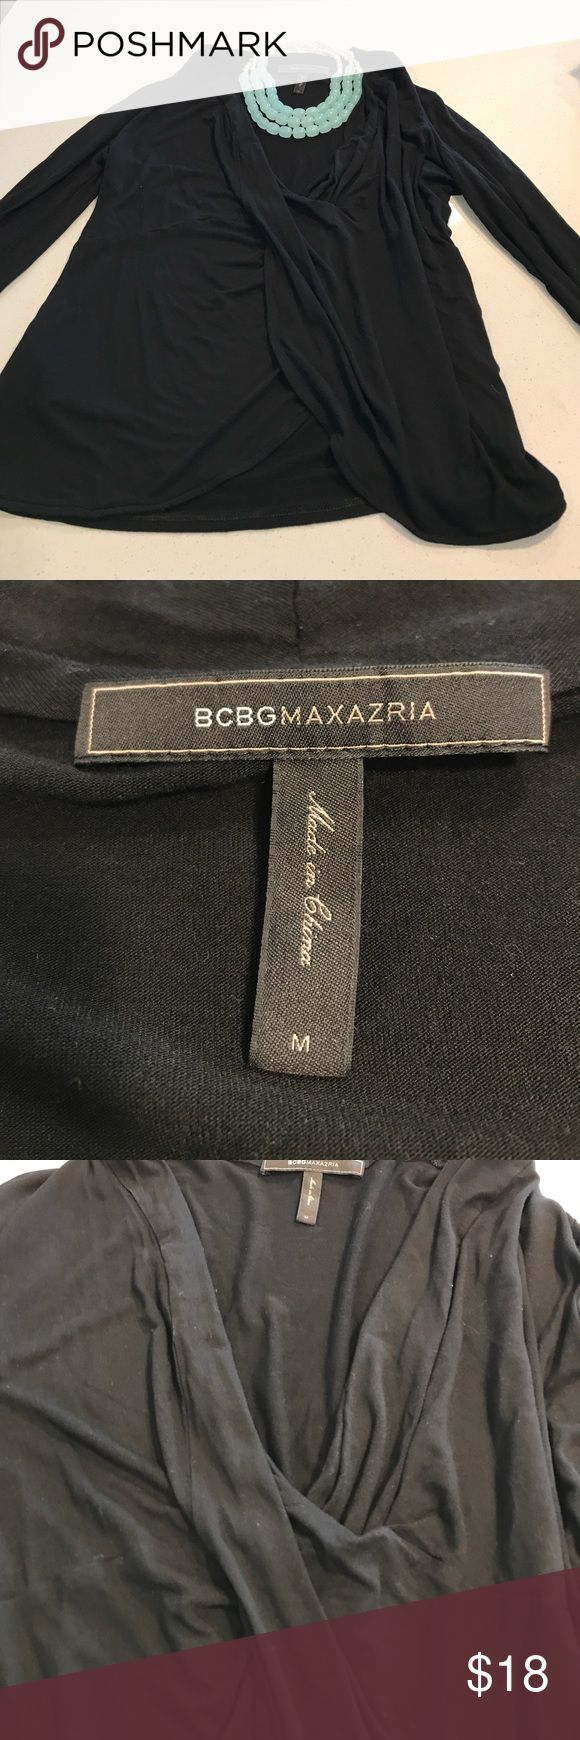 Black BCBGMaxazria top Black low v neck BCBGMaxazria top. Great with a statement necklace. Perfect for a dressy or casual night. Only worn once BCBGMaxAzria Tops